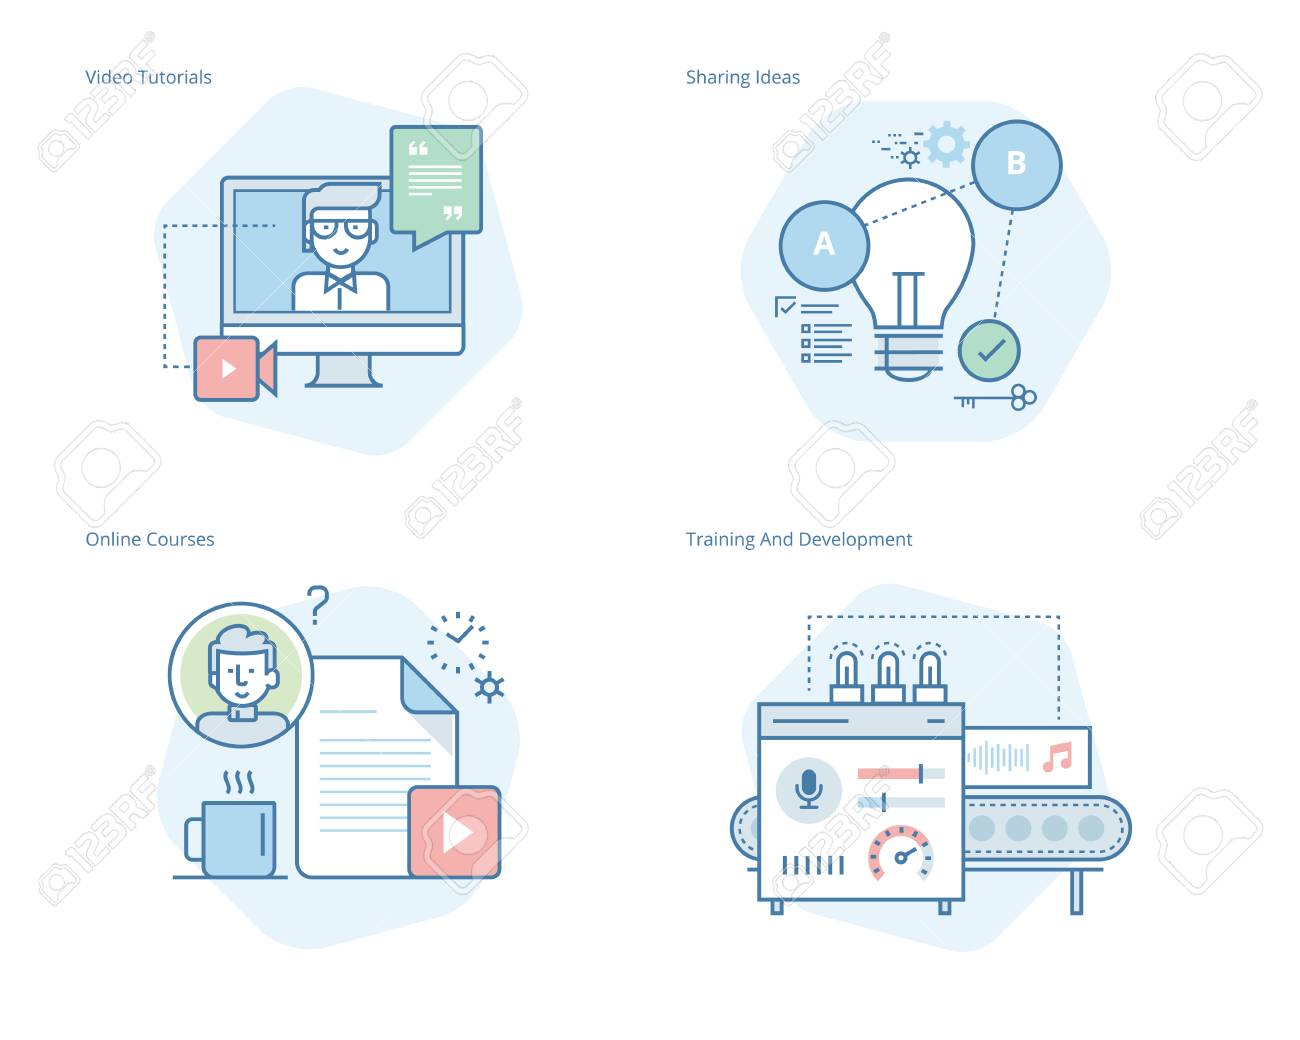 Set of concept line icons for education, video tutorials, online courses, training and development, sharing ideas. UI/UX kit for web design, applications, mobile interface, infographics and print design. - 80558775